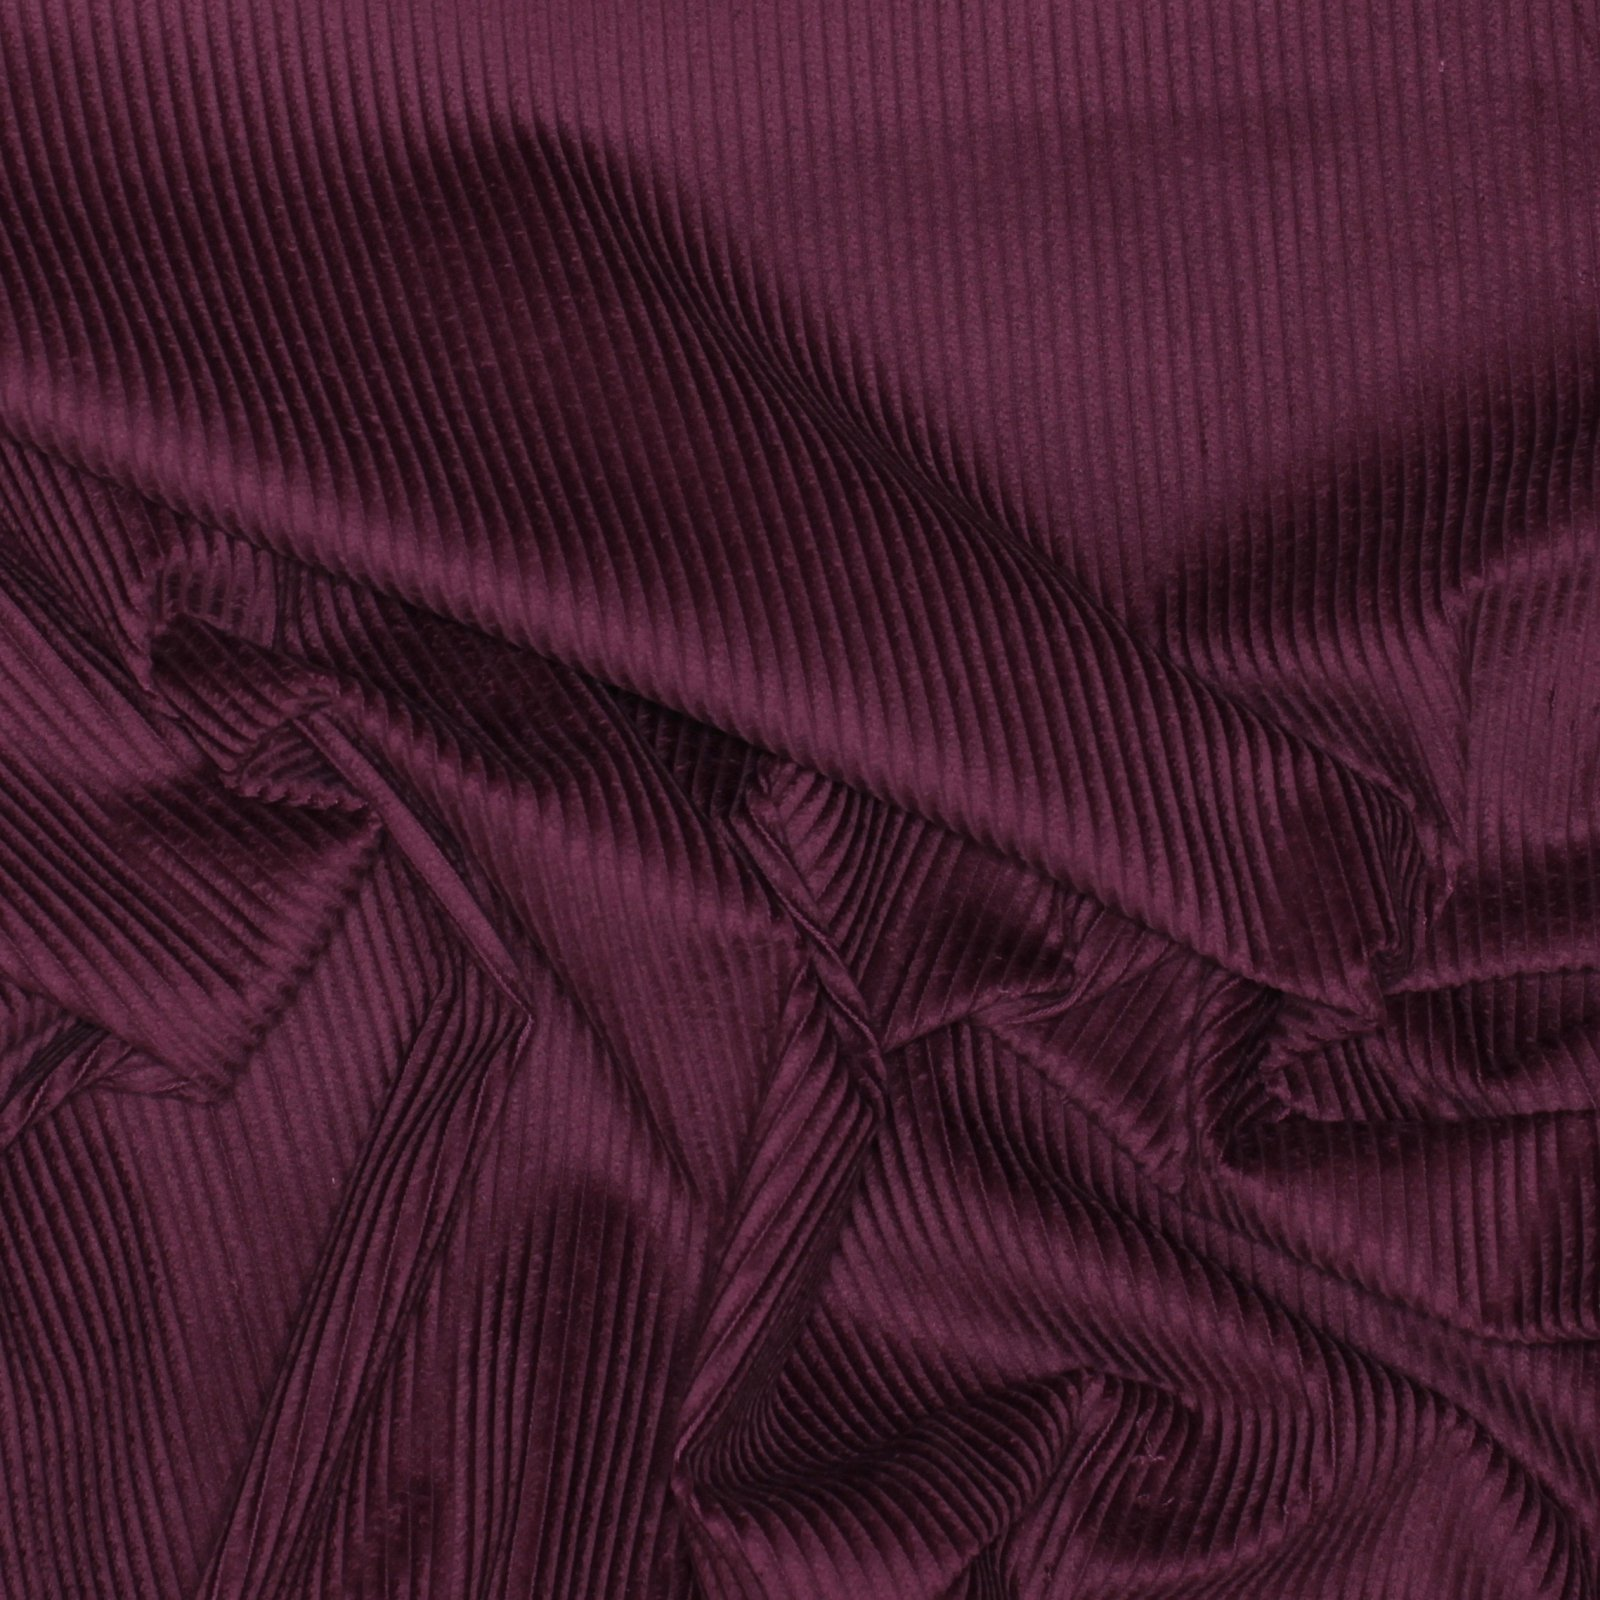 Cosmo - Wide-Wale Corduroy - Wine - Japanese Cotton